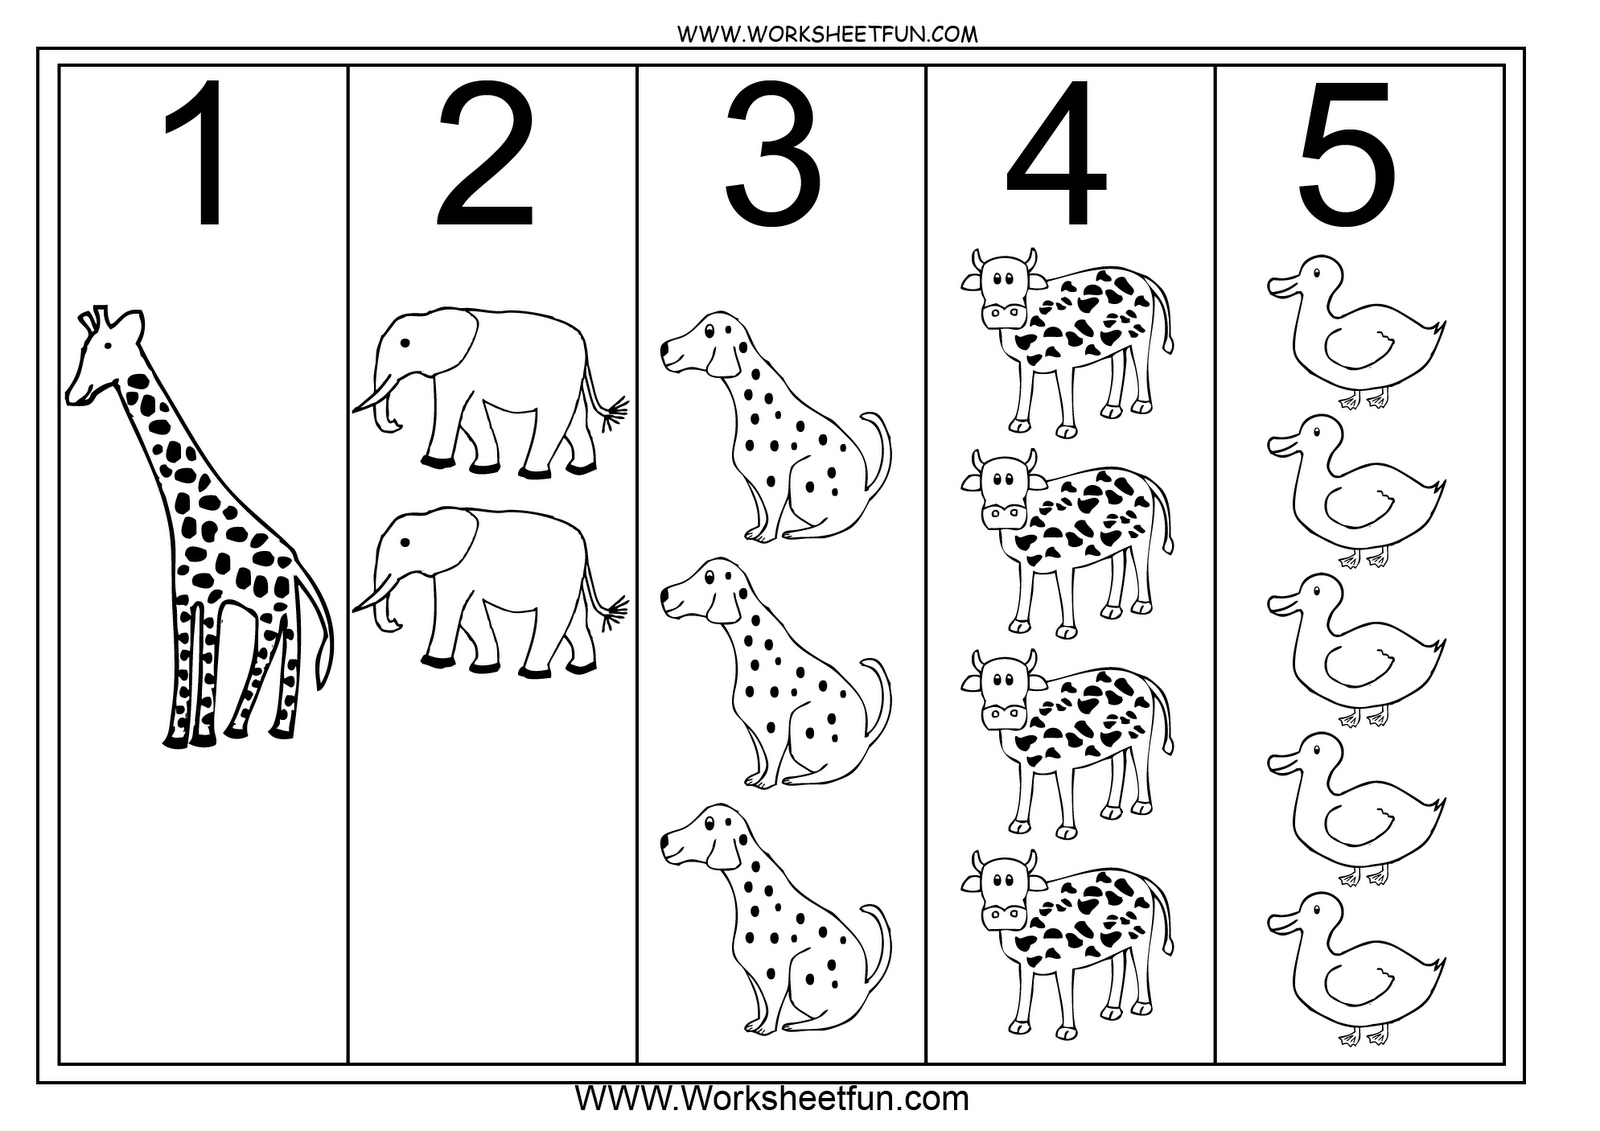 Number 5 coloring pages for kids, counting sheets printables free -  Wuppsy.com | Coloring pages inspirational, Coloring pages for kids, Bear coloring  pages | 1131x1600